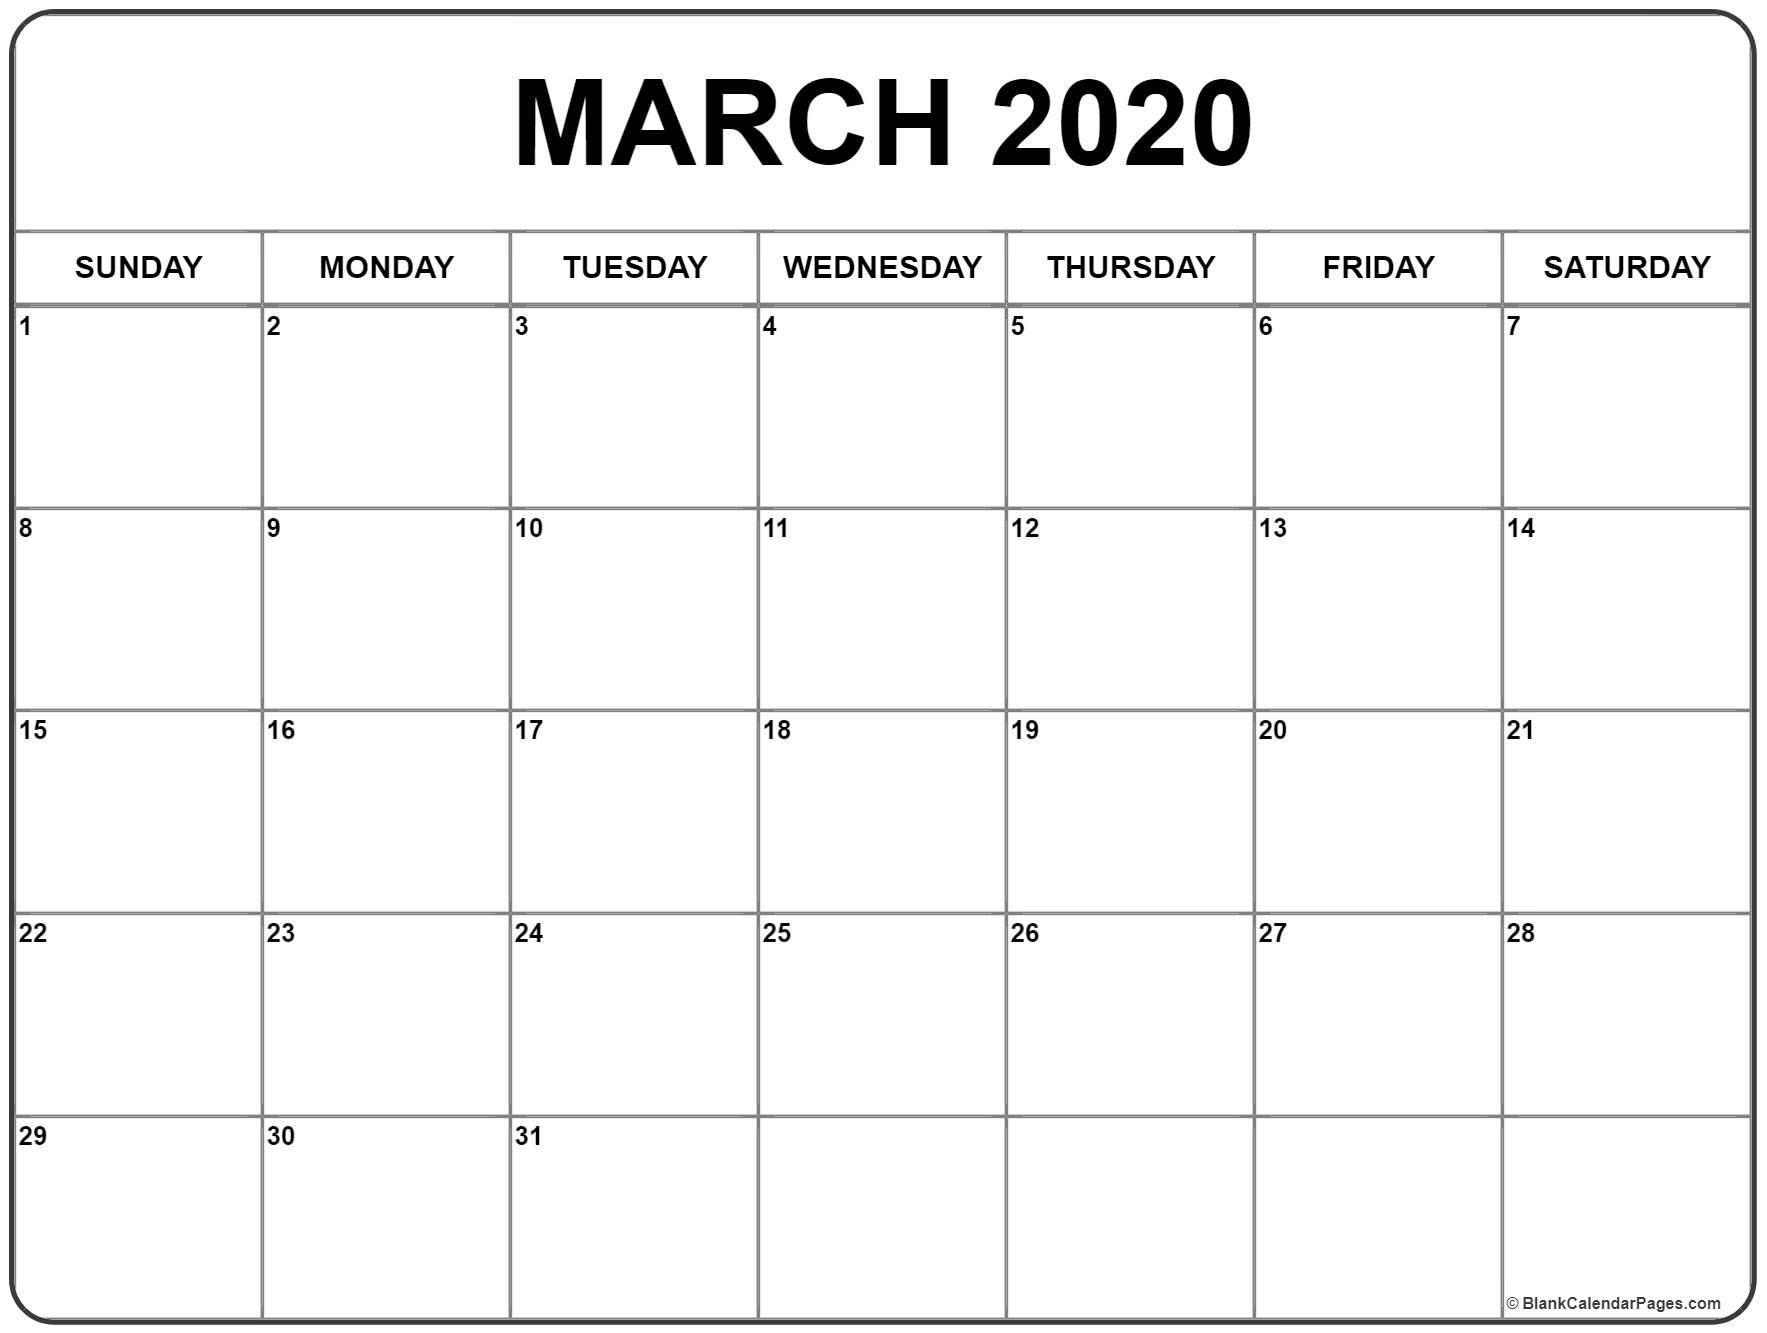 March 2020 Calendar | Free Printable Monthly Calendars-January February March 2020 Calendar